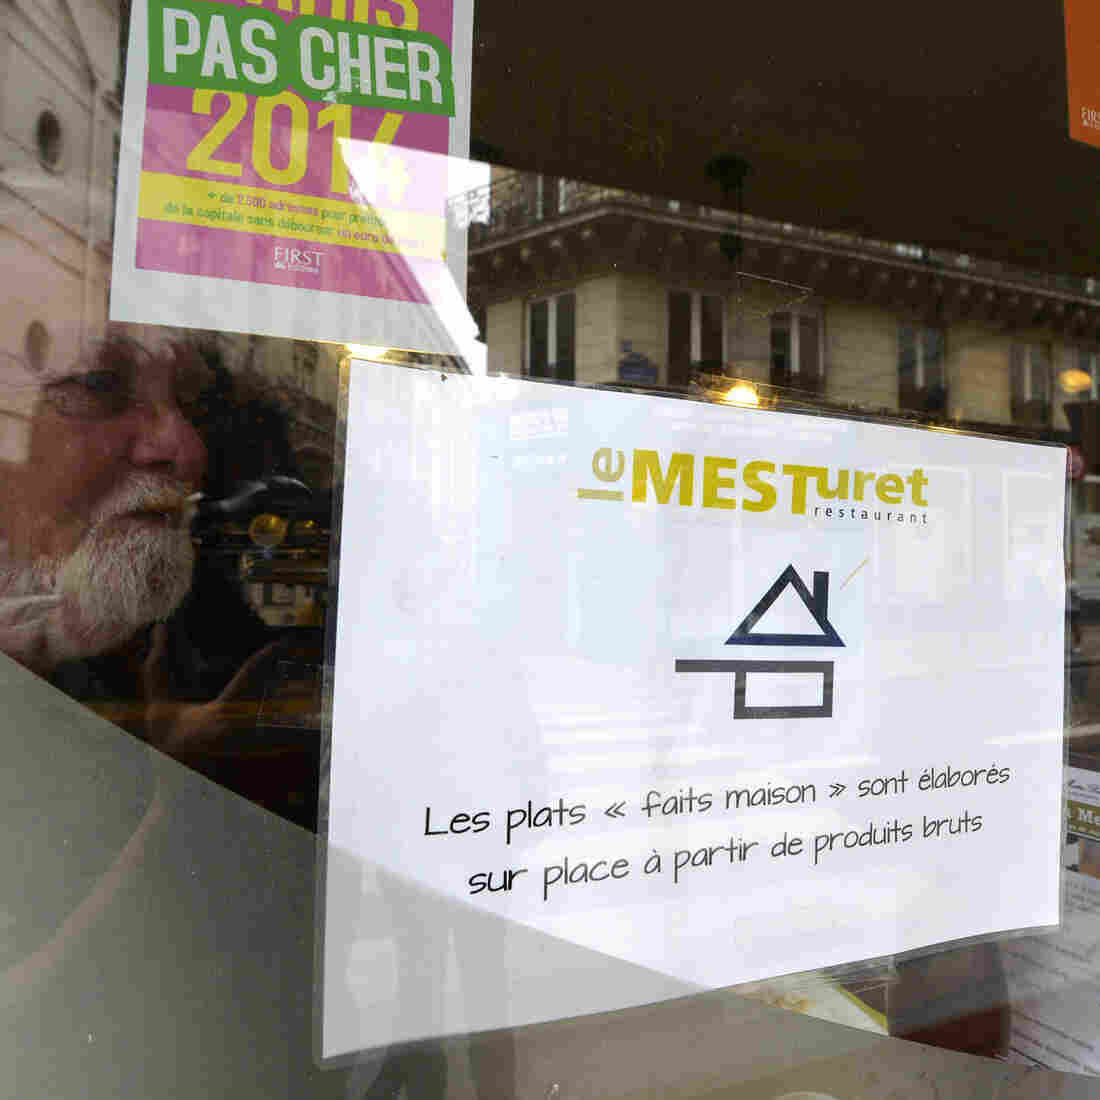 A new logo that is supposed to ensure a Paris restaurant's food is homemade (fait maison in French) is already stirring up controversy.